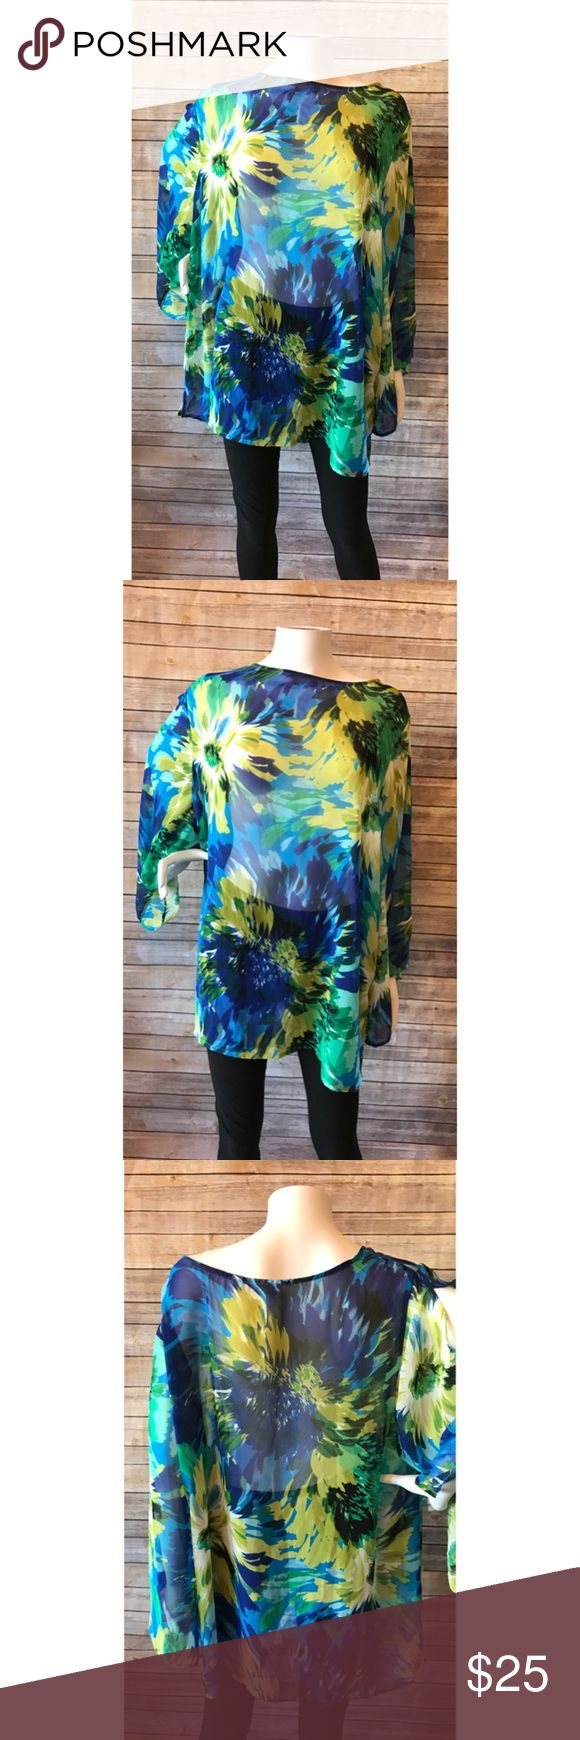 Susan Graver Plus Size Sheer Floral Top Super cute, very good condition! Fast shipping! Susan Graver Tops Blouses